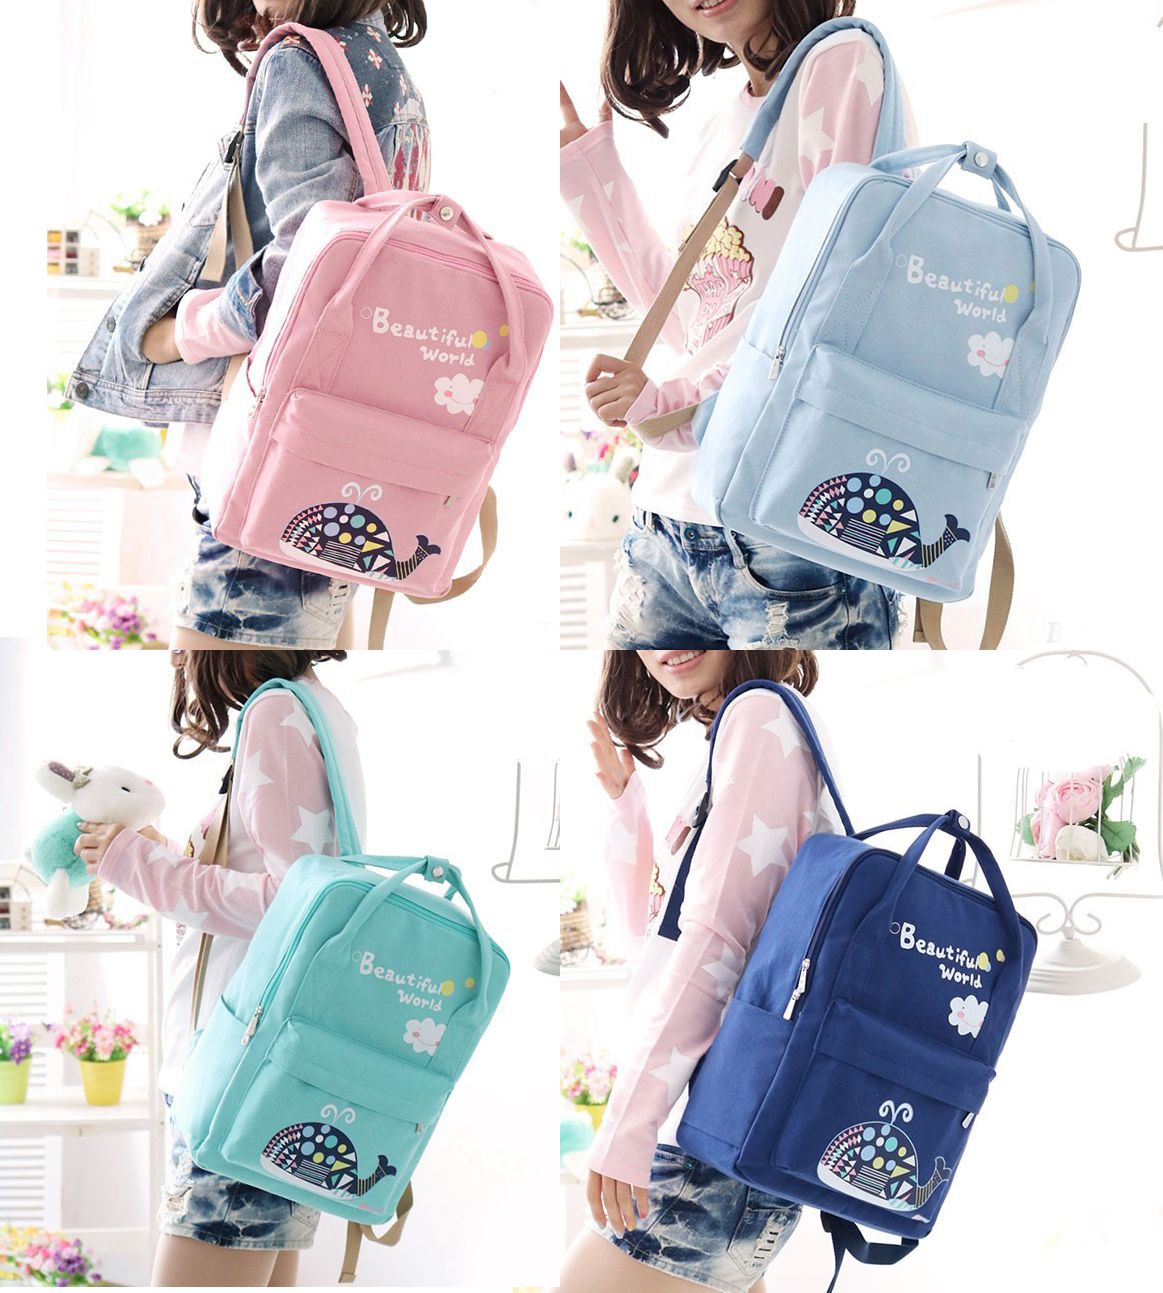 8b5e728b6463 Cute Whale Floral School Bag Backpack Beautiful World Cartoon Canvas  Rucksack backpack for women travel